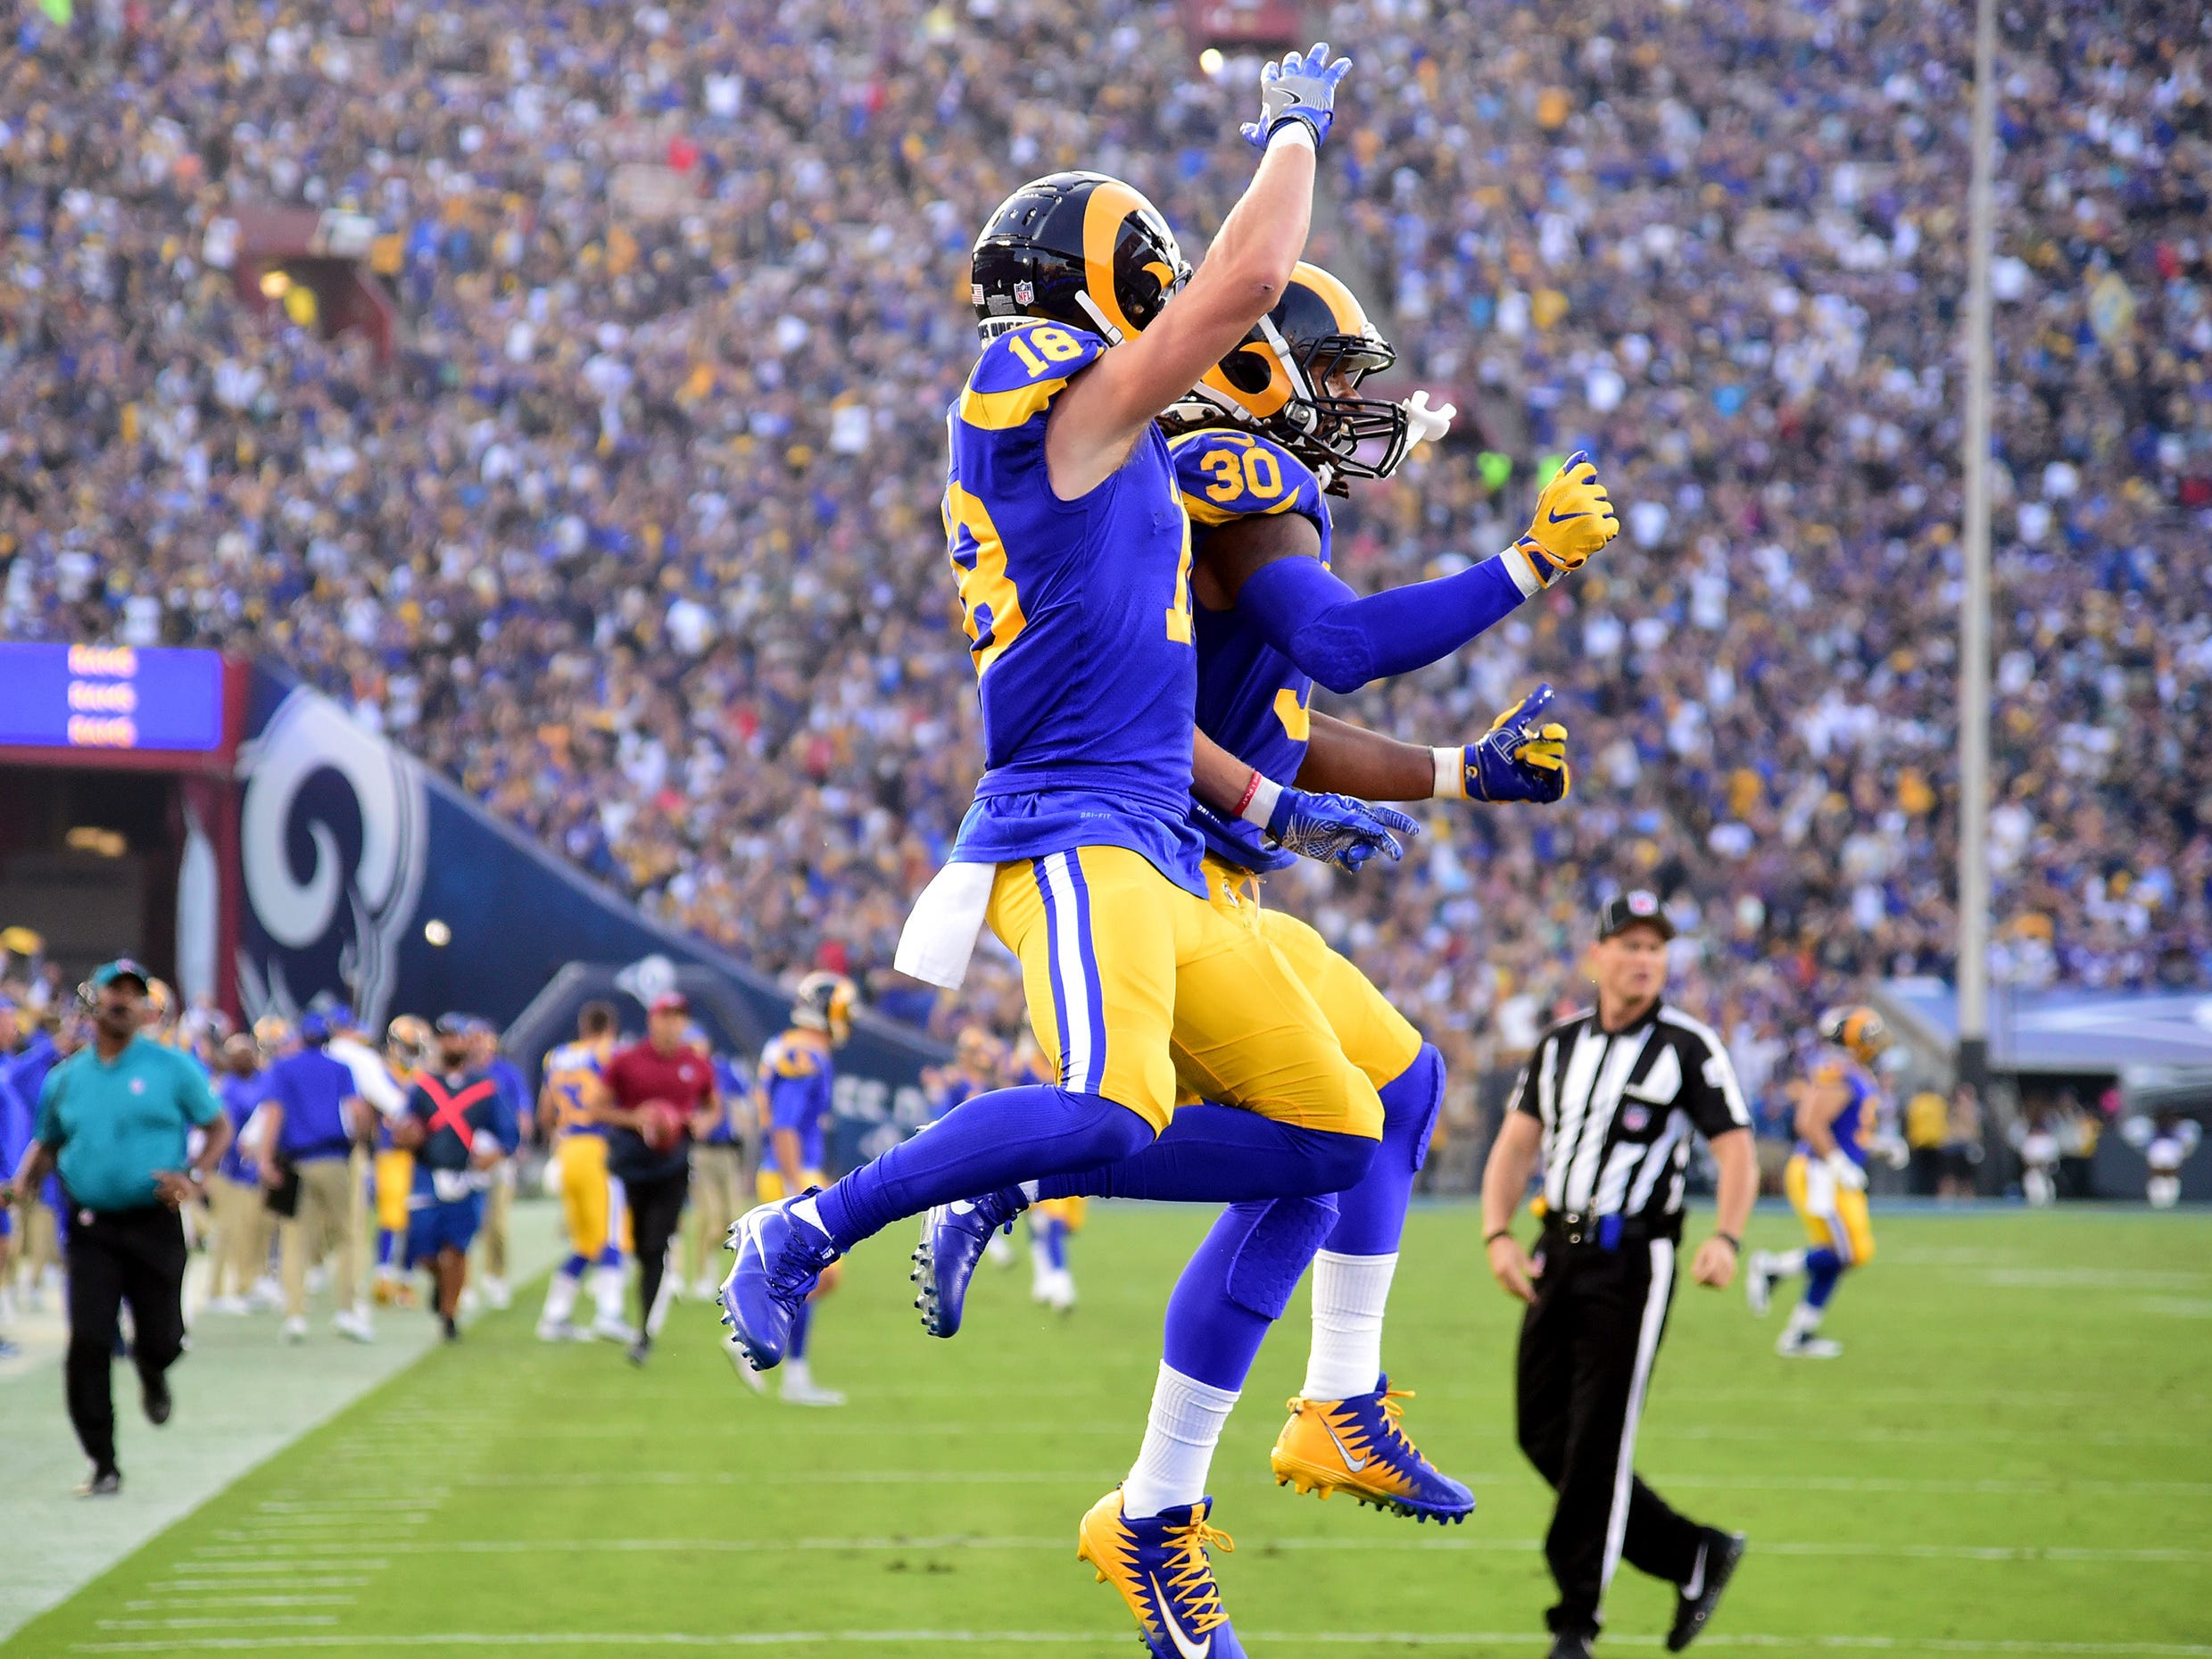 Los Angeles Rams wide receiver Cooper Kupp (18) celebrates with Todd Gurley after catching a touchdown pass.